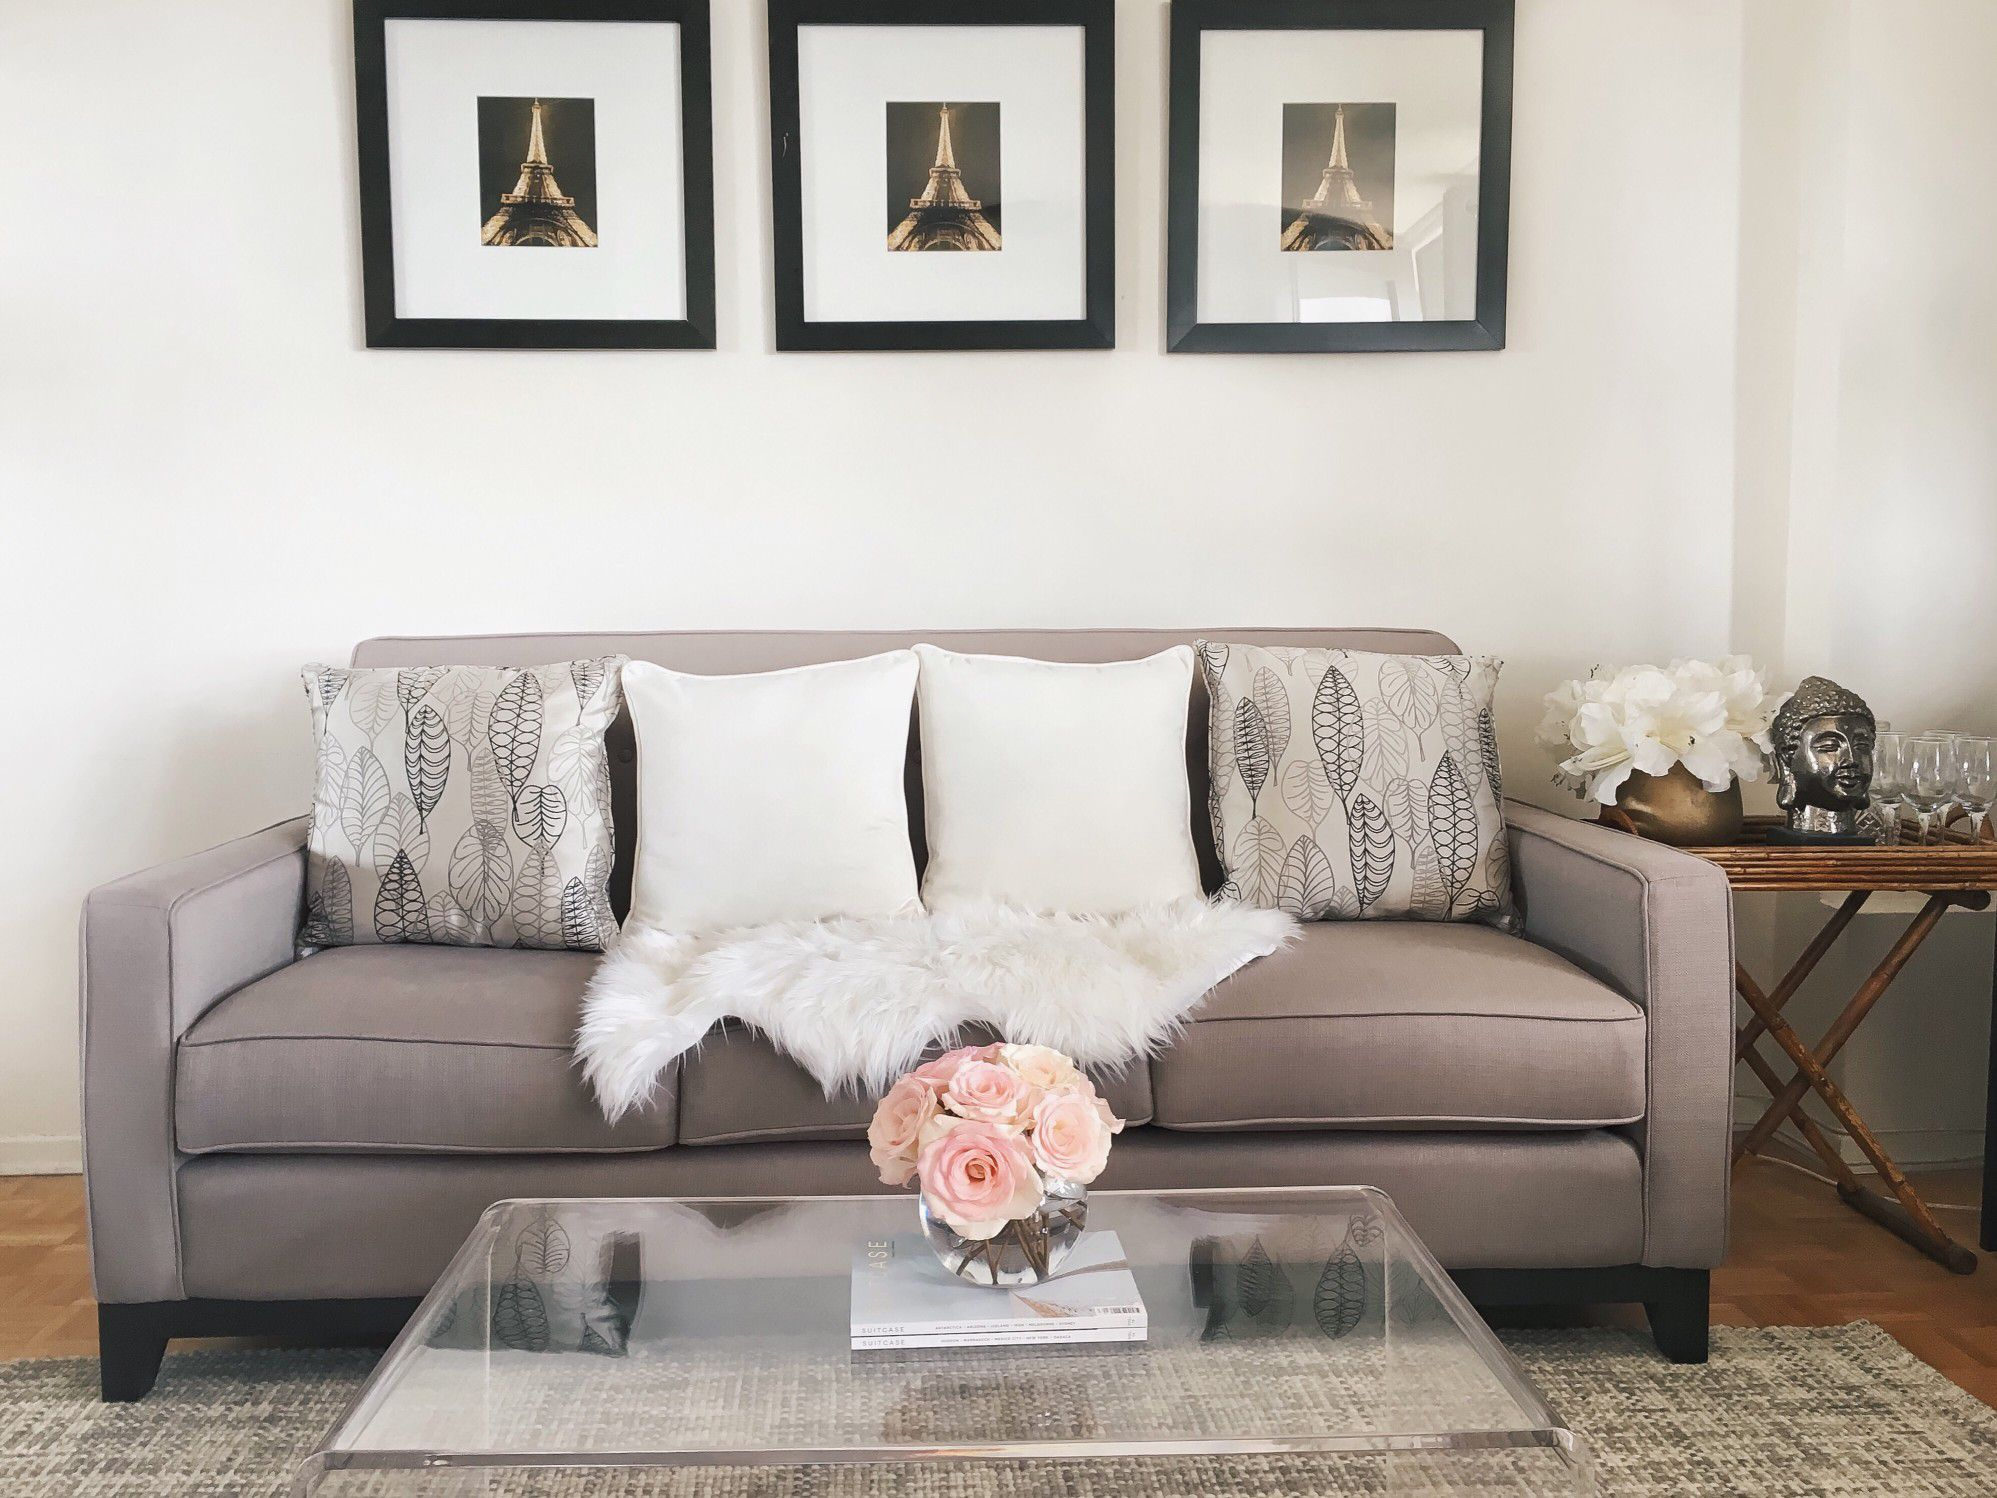 How to Avoid Common Decorating Mistakes